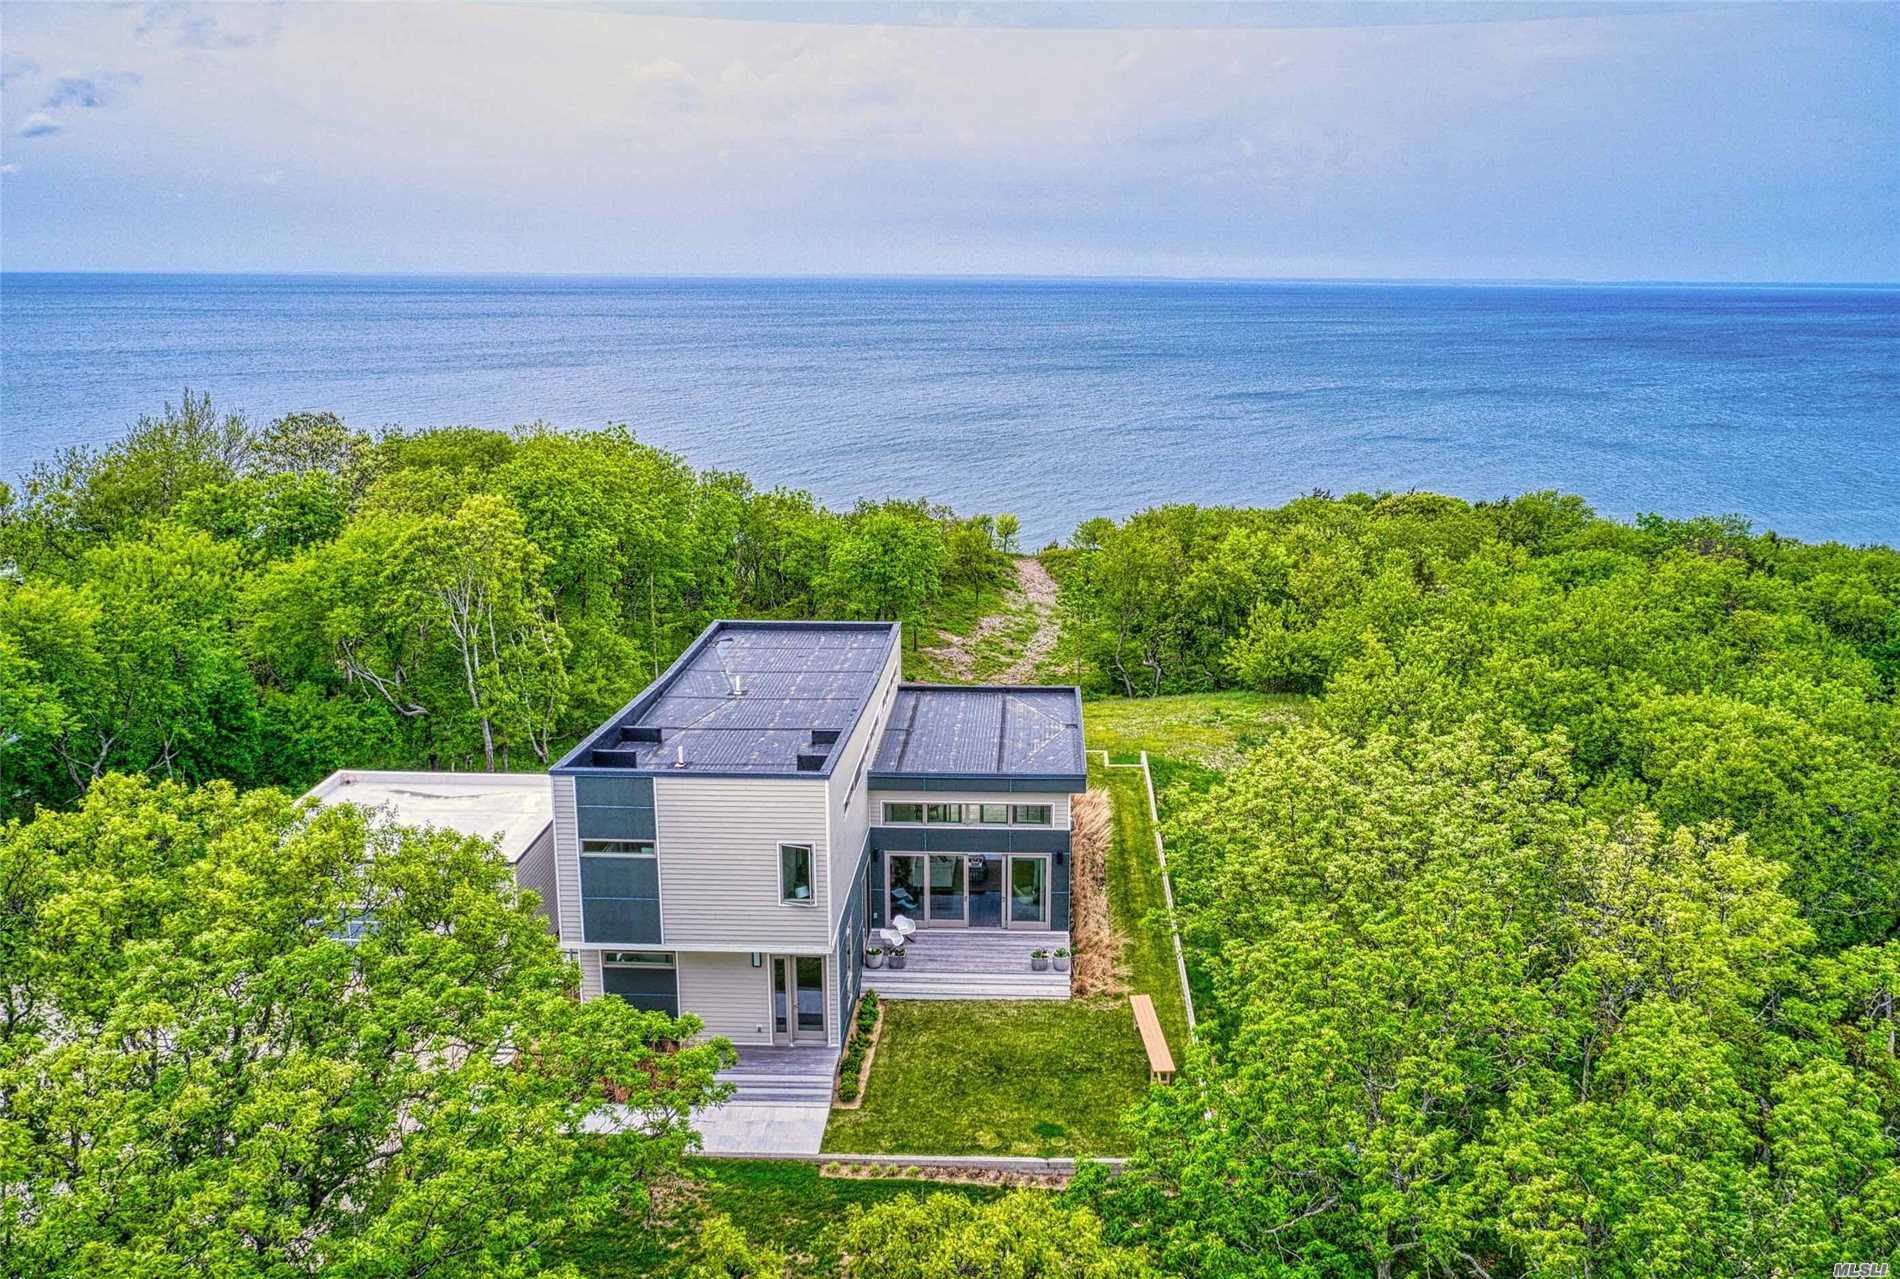 Enjoy Beautiful Sunsets From This Modern, Light-Filled Waterfront Home With 200 Feet Of Private Beach! This New Contemporary Home Sits High On 5 Acres Overlooking The Li Sound. It Is Energy Efficient And Offers An Open Floorplan With 4 Bedrooms, 3 Baths And 2.5 Car Garage. A Perfect Weekend Retreat To Enjoy The Relaxed Lifestyle Of The North Fork. Close To Vineyards.